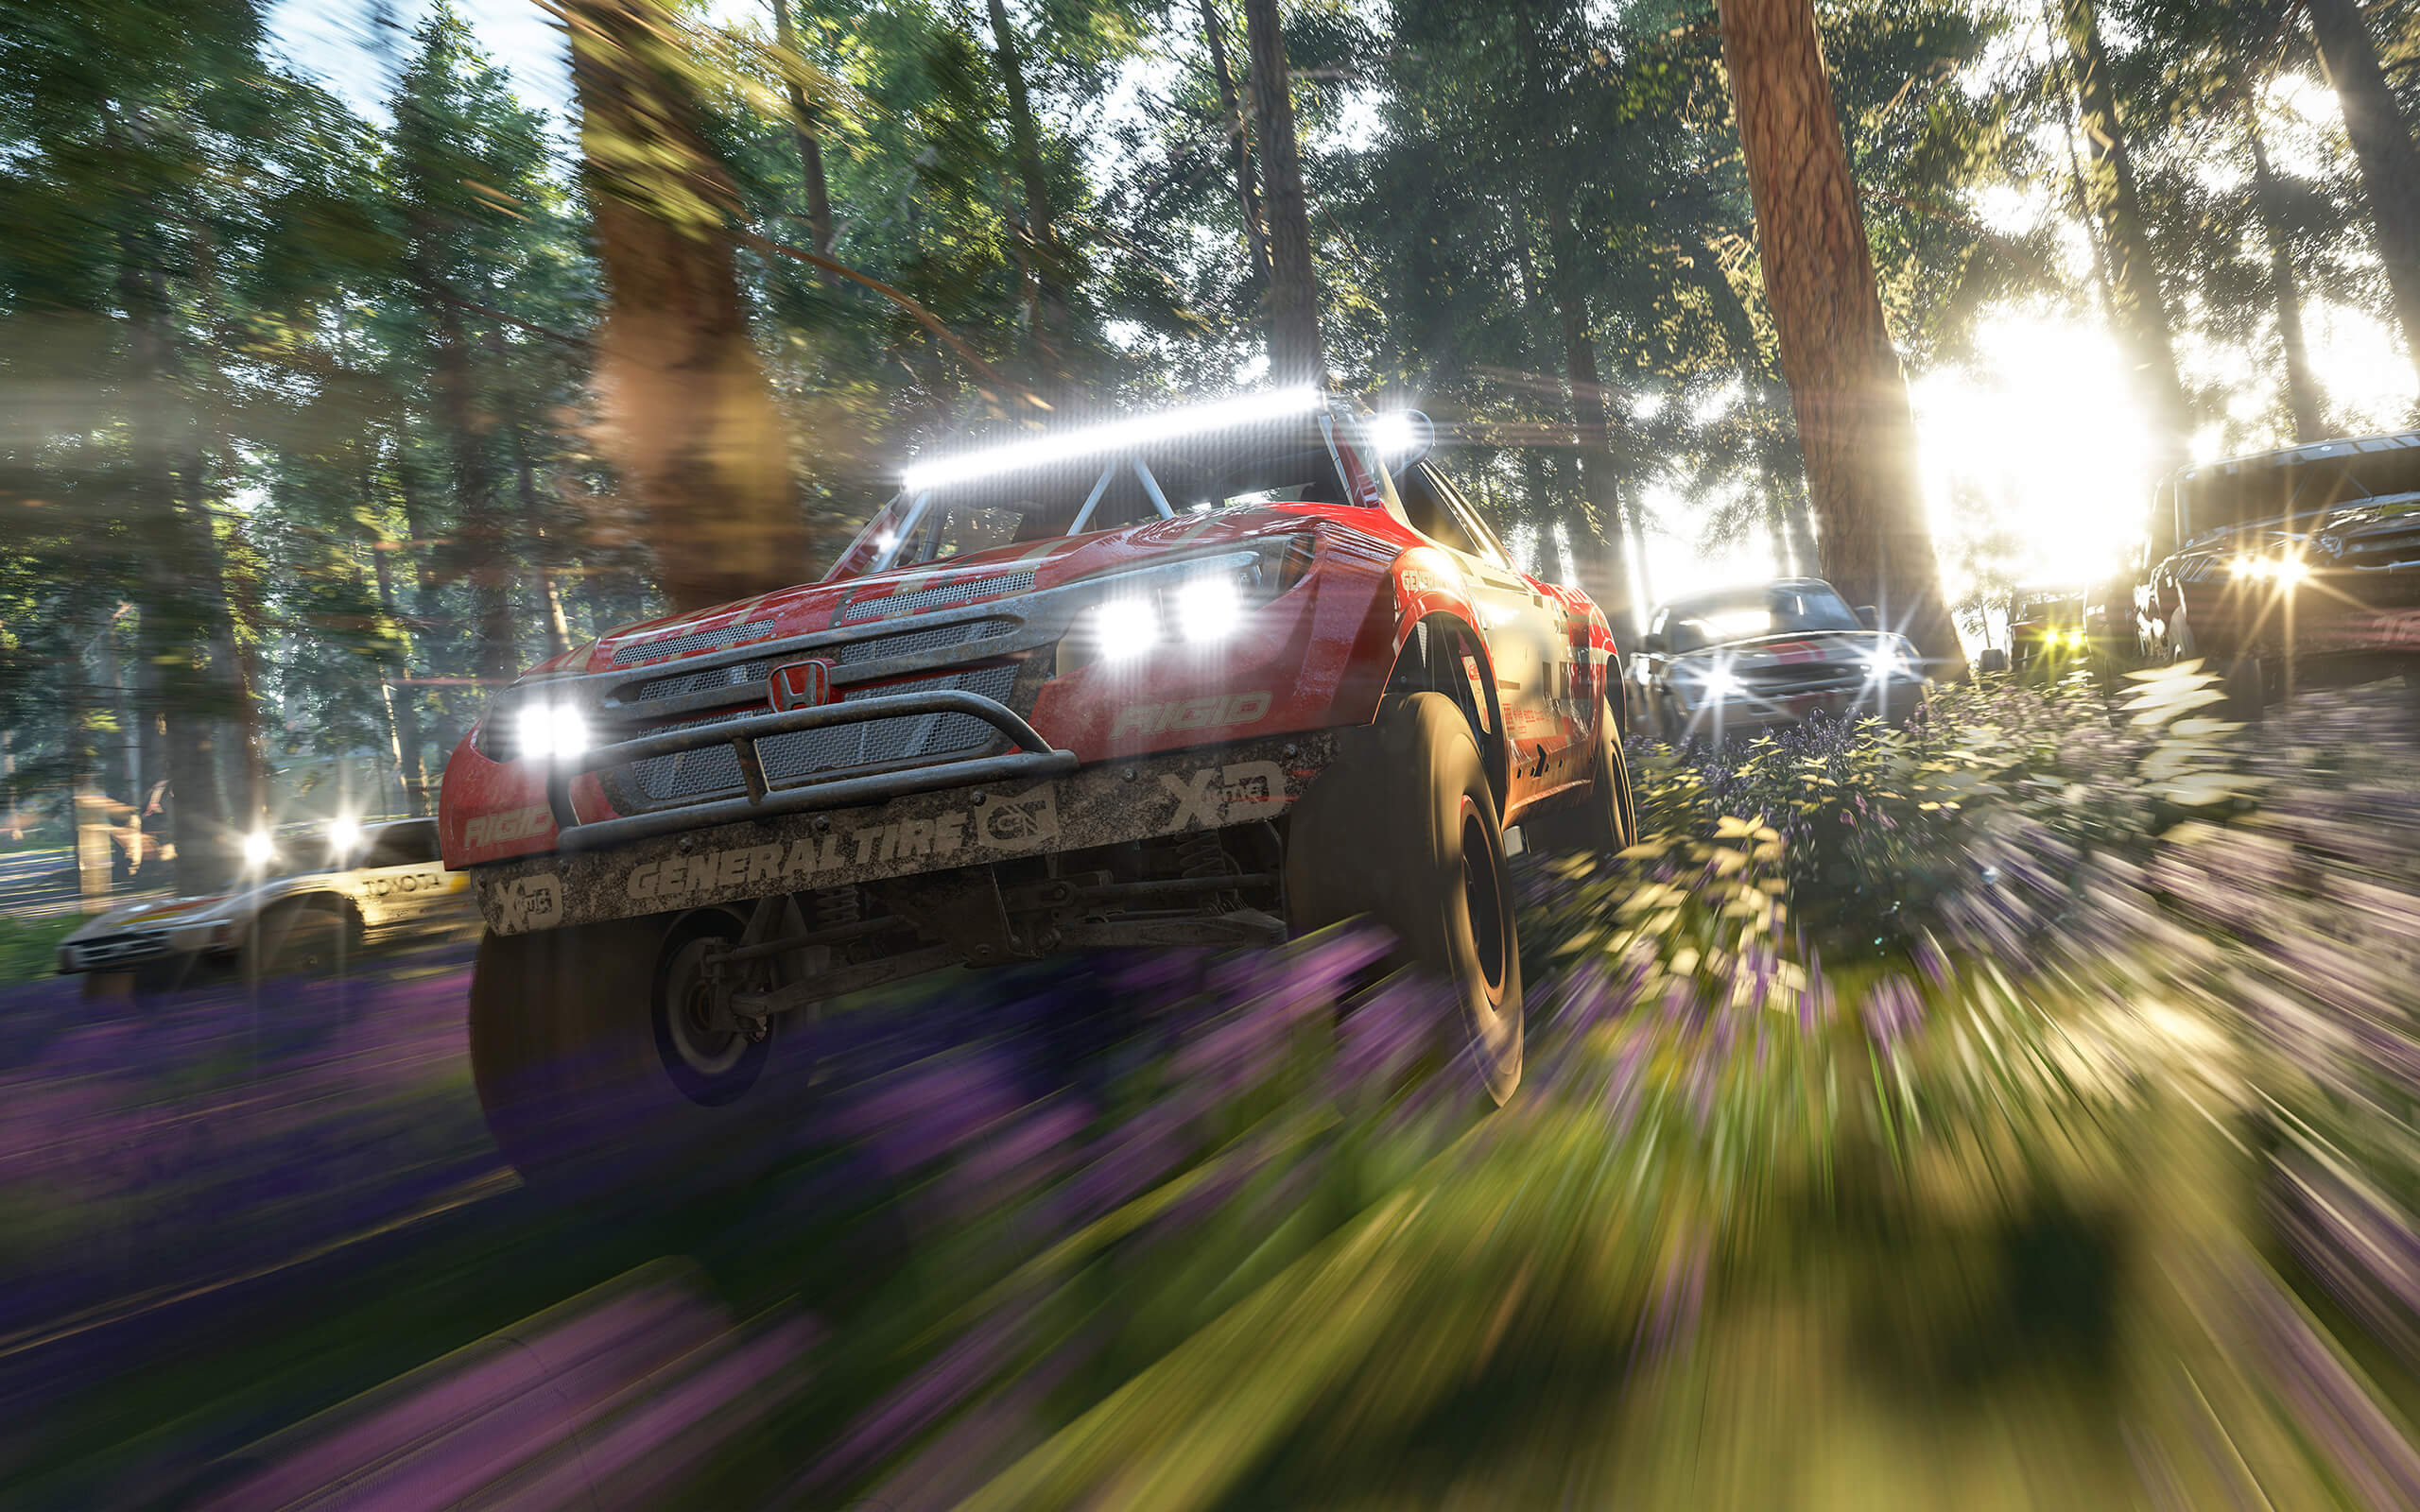 Cars racing through a forest from Forza Horizon 4